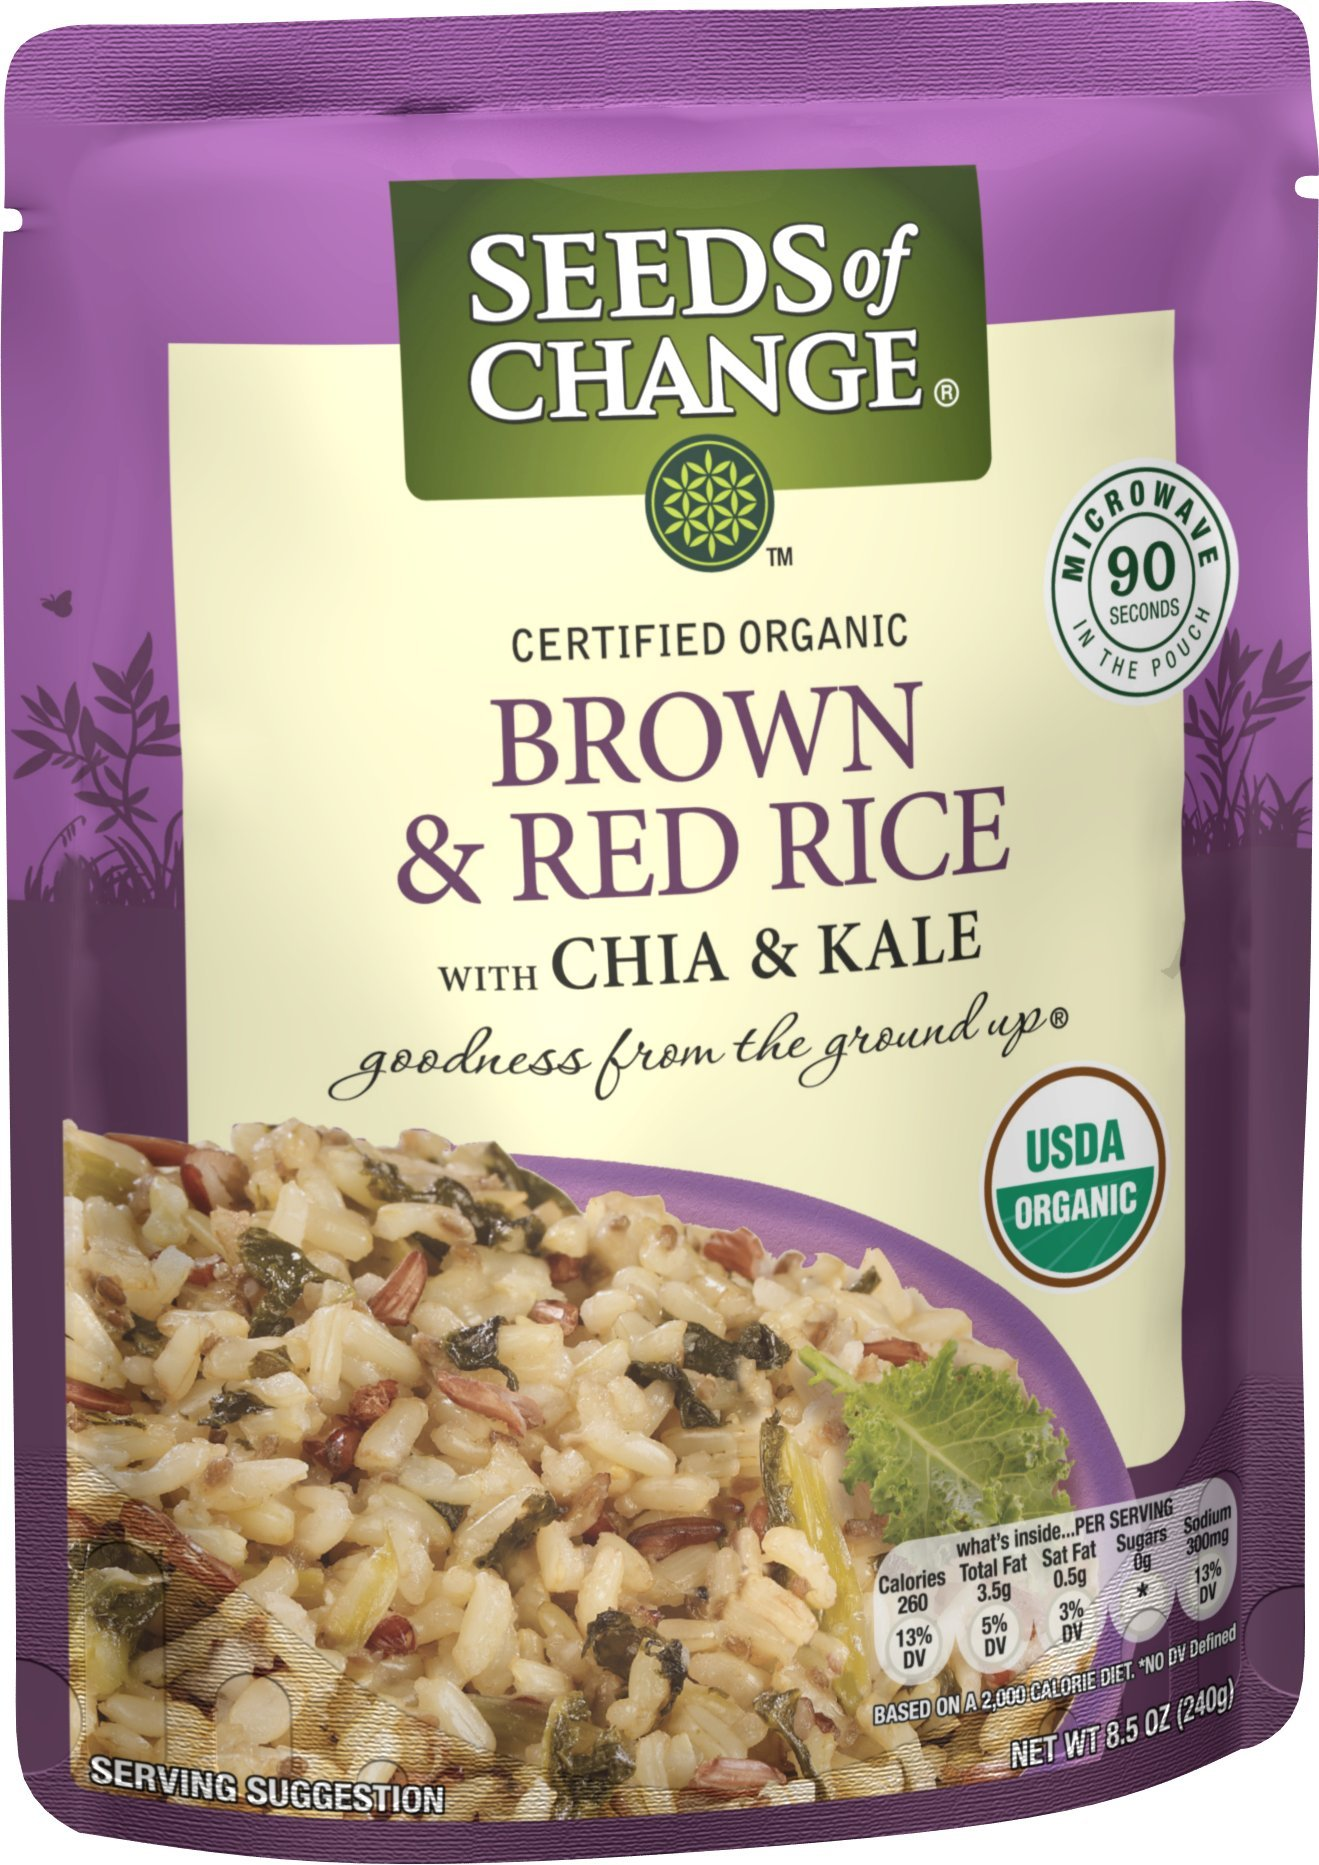 SEEDS OF CHANGE Organic Quinoa, Brown & Red Rice (12pk)